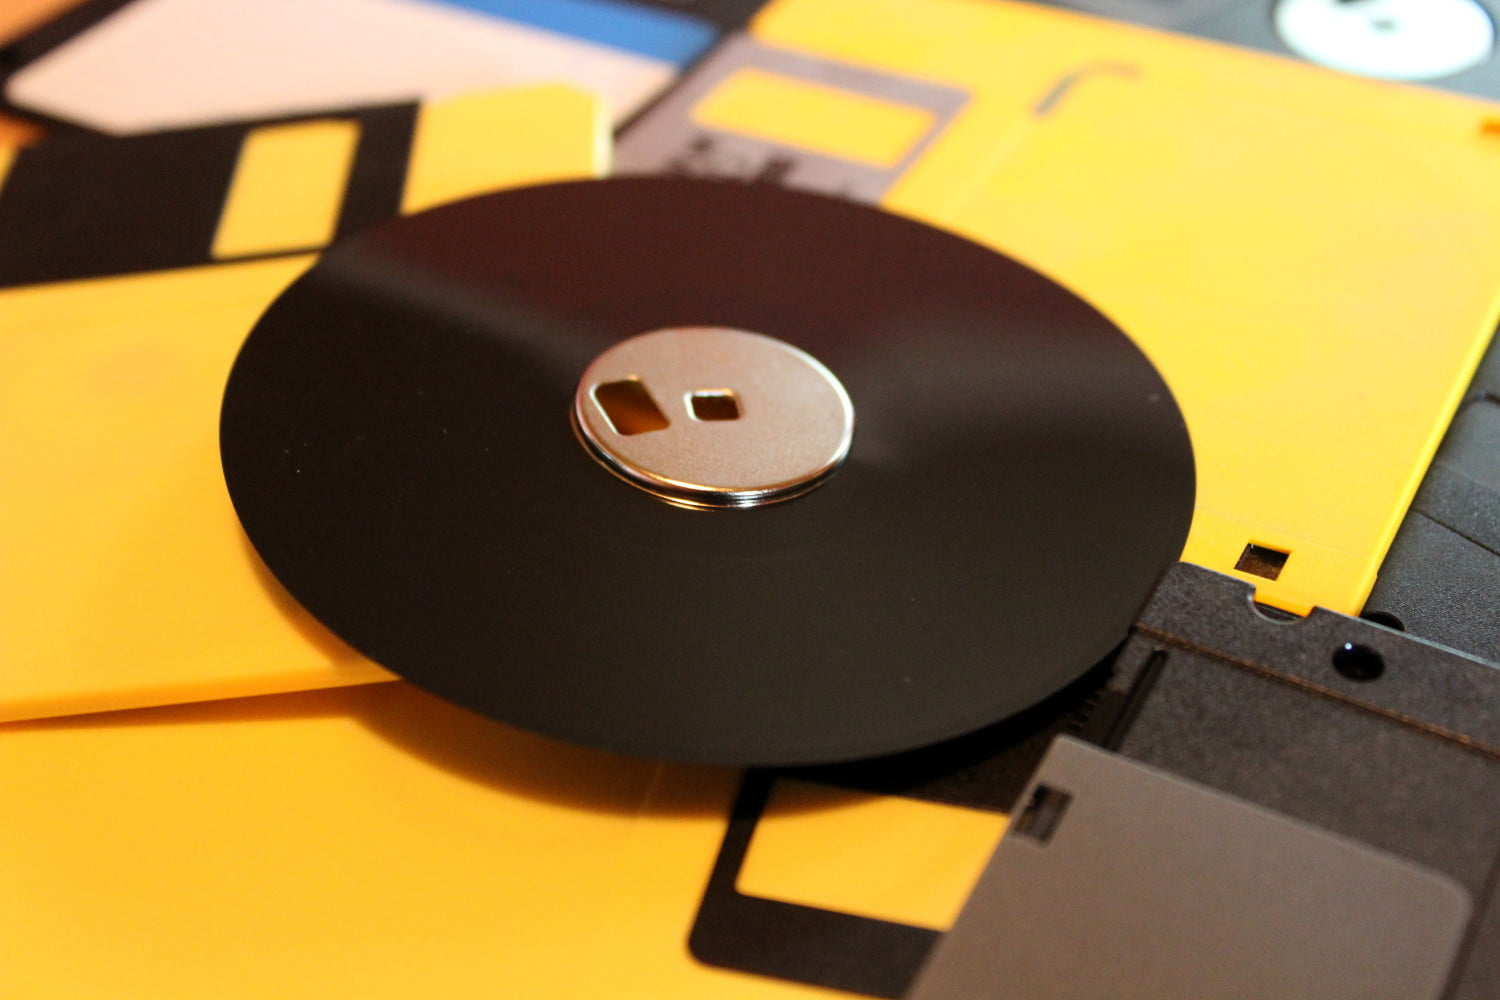 Why The Floppy Disk Is Still Used Today | Digital Trends